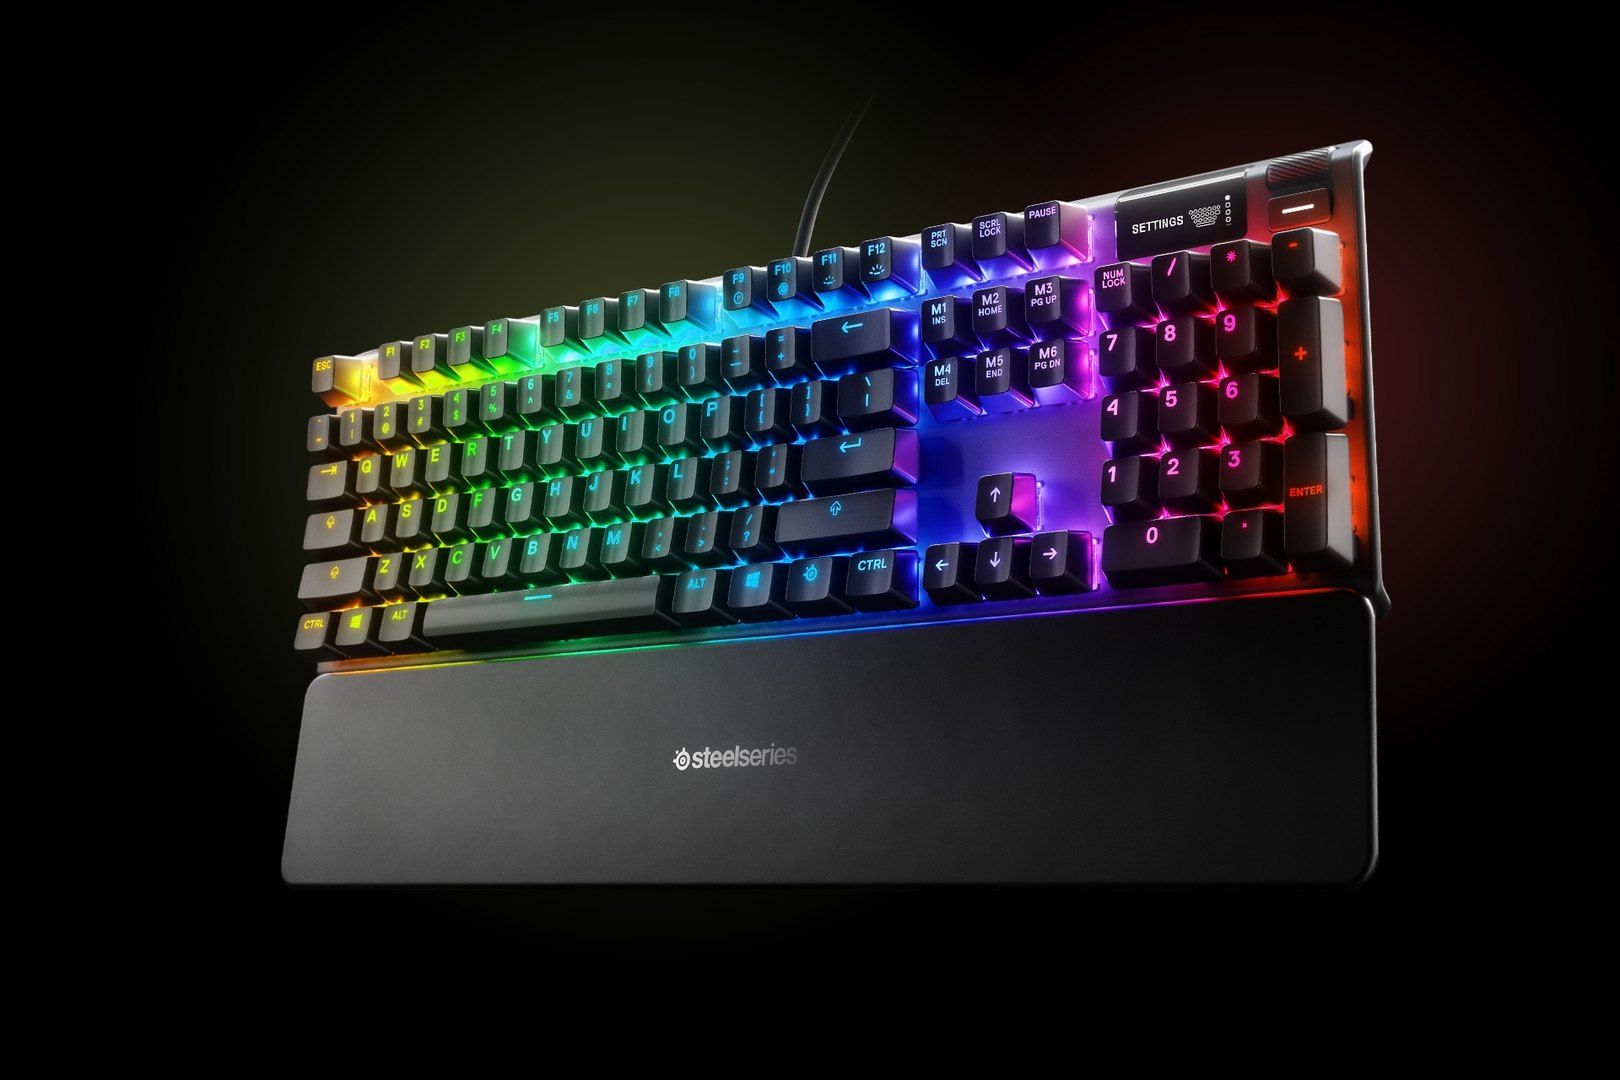 A shot of the Apex 7 keyboard utilizing its RGB lighting.